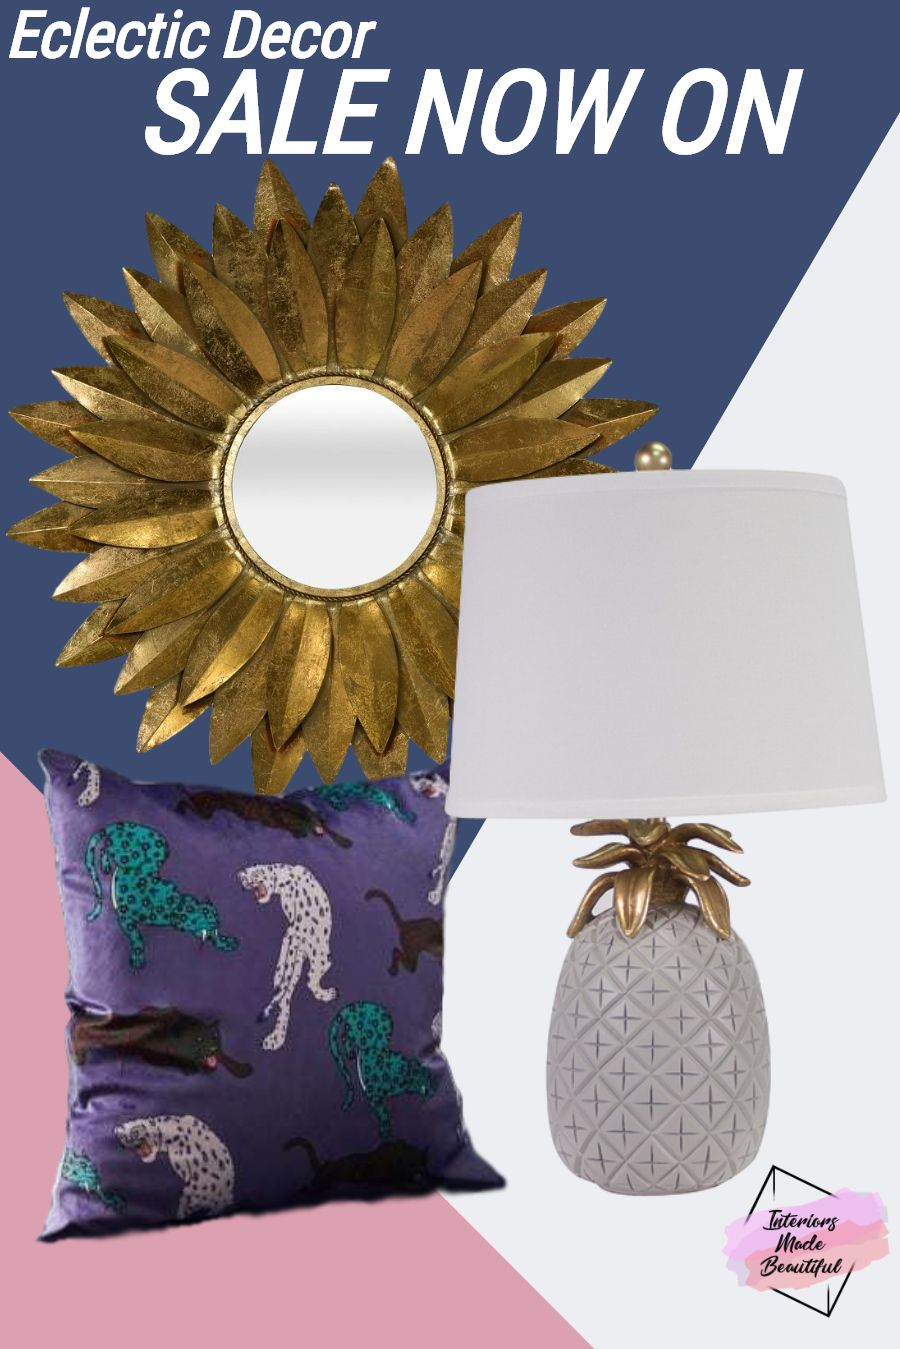 Find a wide range of eclectic decor at Interiors Made Beautiful. **SALE NOW ON** #eclecticdecor #homedecor #eclecticstyle